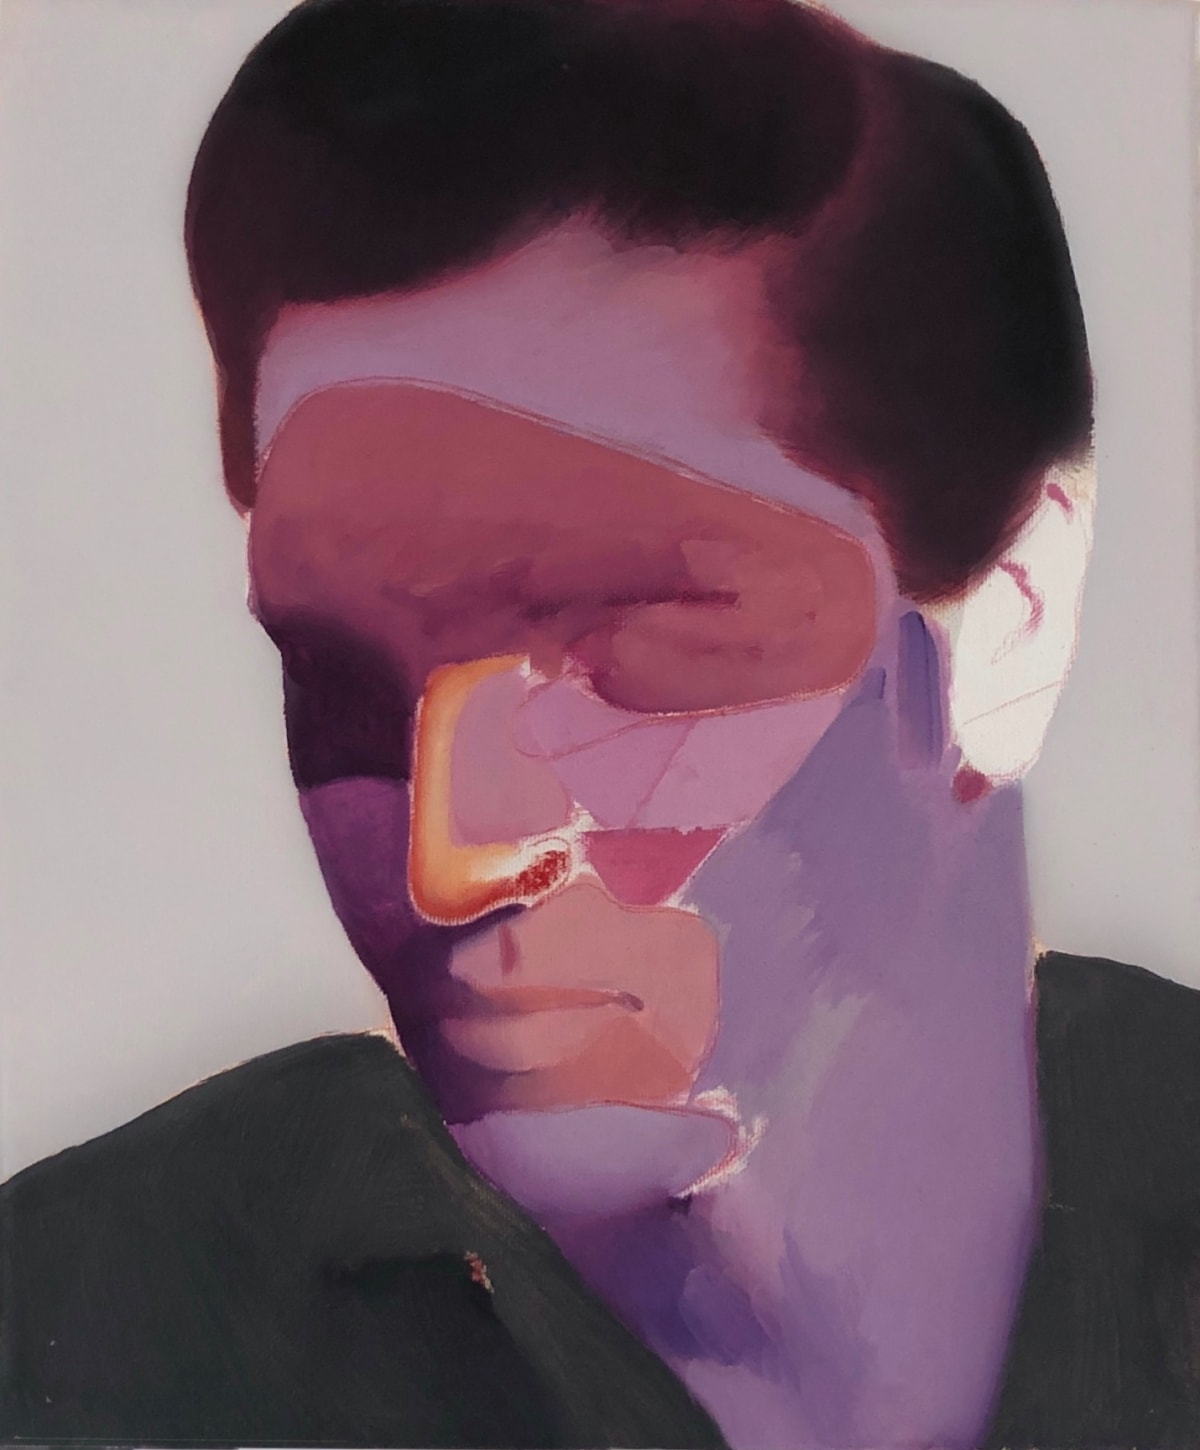 Matteo Venturi Elvis , 2019 Oil, Acrylic and Pastel on Canvas 31 x 37 cm 12 1/4 x 14 5/8 in